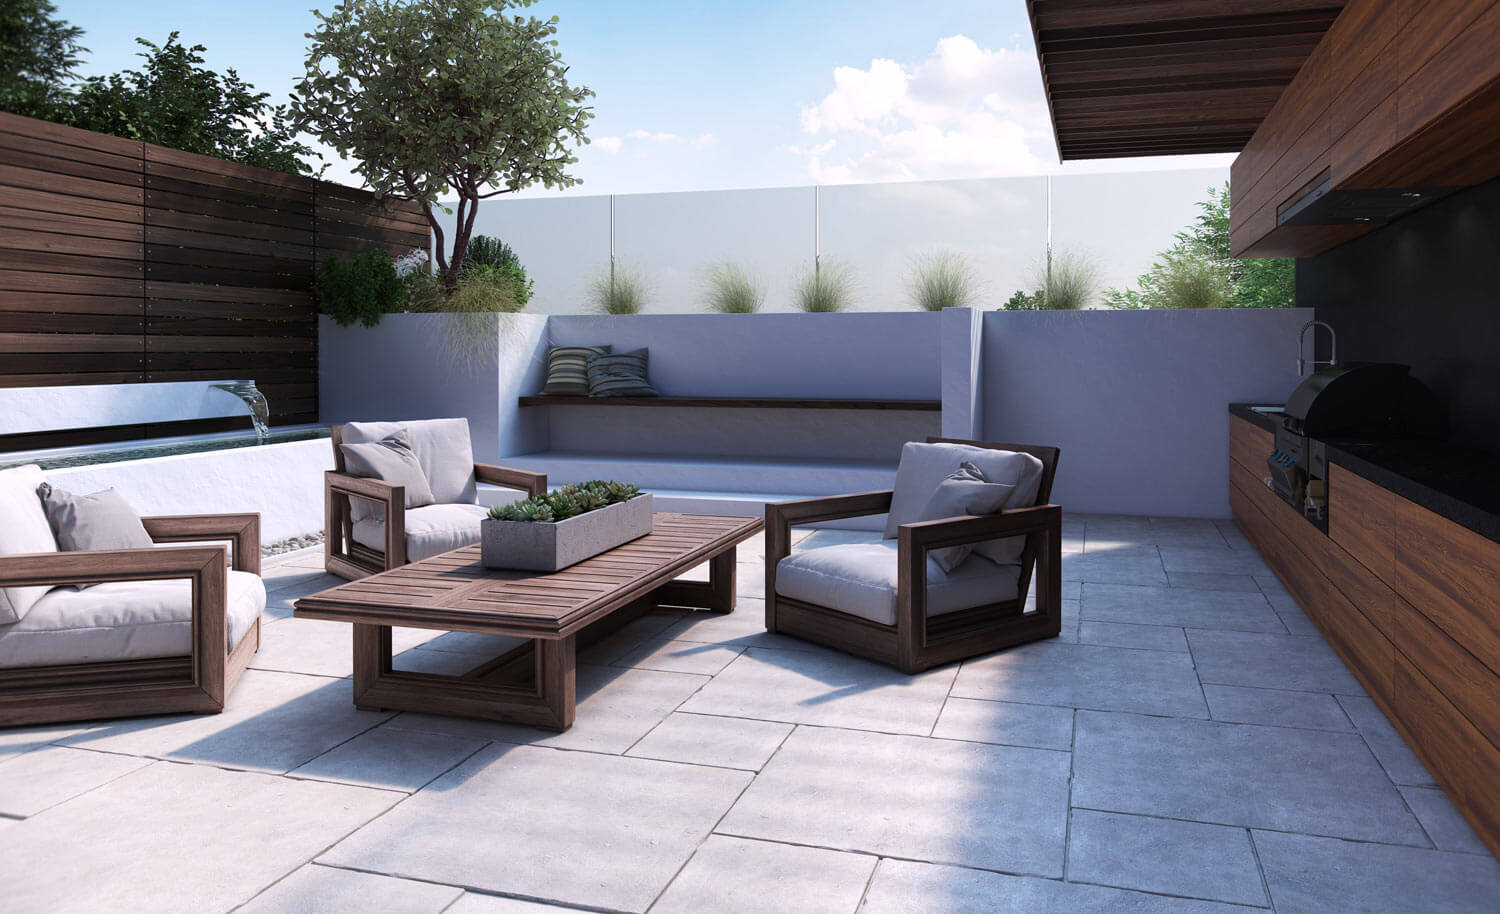 A wide open courtyard created in high quality CGI, with modern wooden garden furniture and pale cushions, wood panelled walls and large concrete slabs to the floor